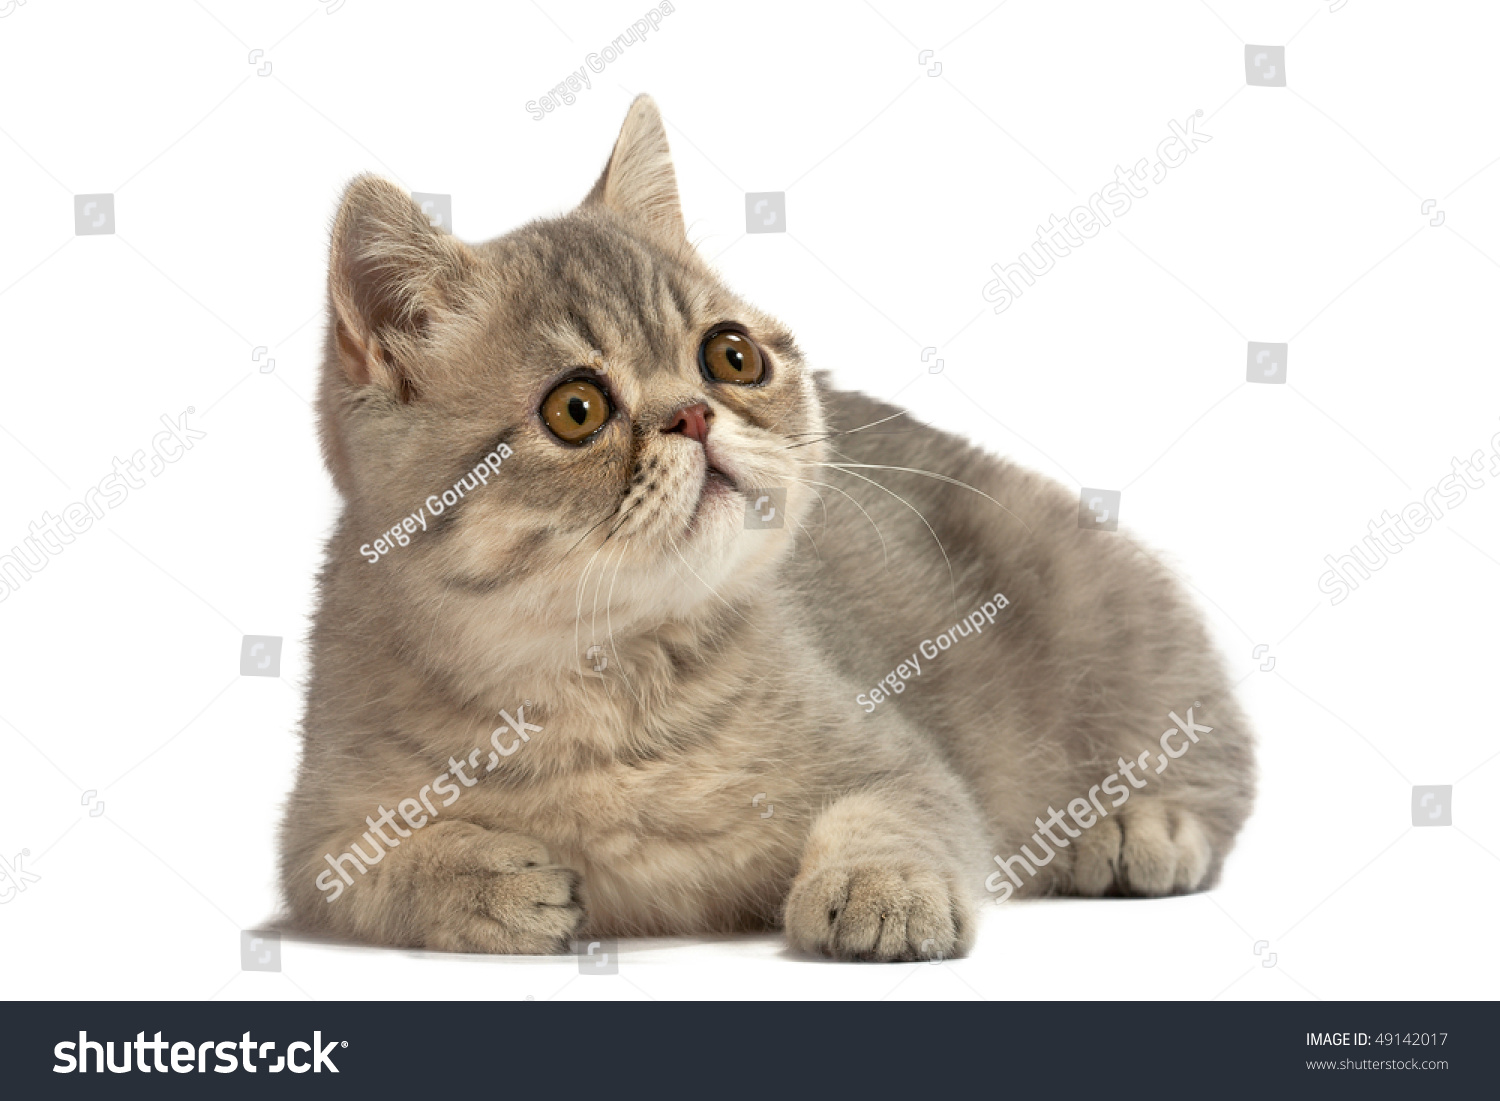 Where Can I Get A English Short Haired Blue Cat